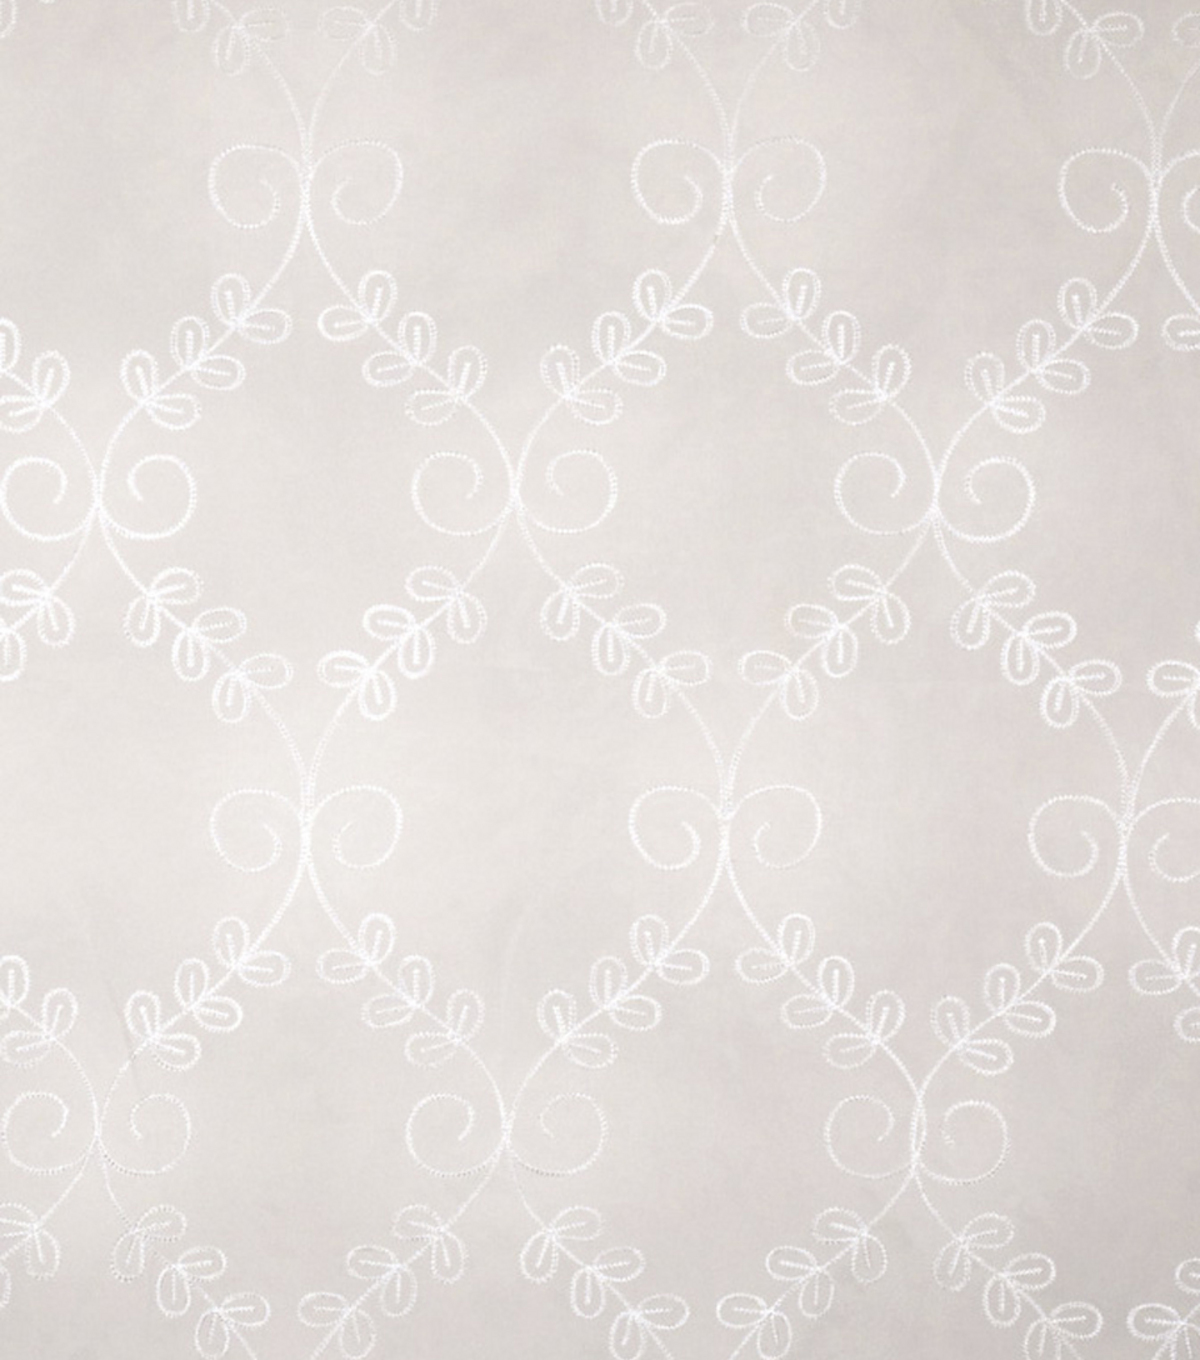 Home Decor 8\u0022x8\u0022 Fabric Swatch-Eaton Square Fifi   White